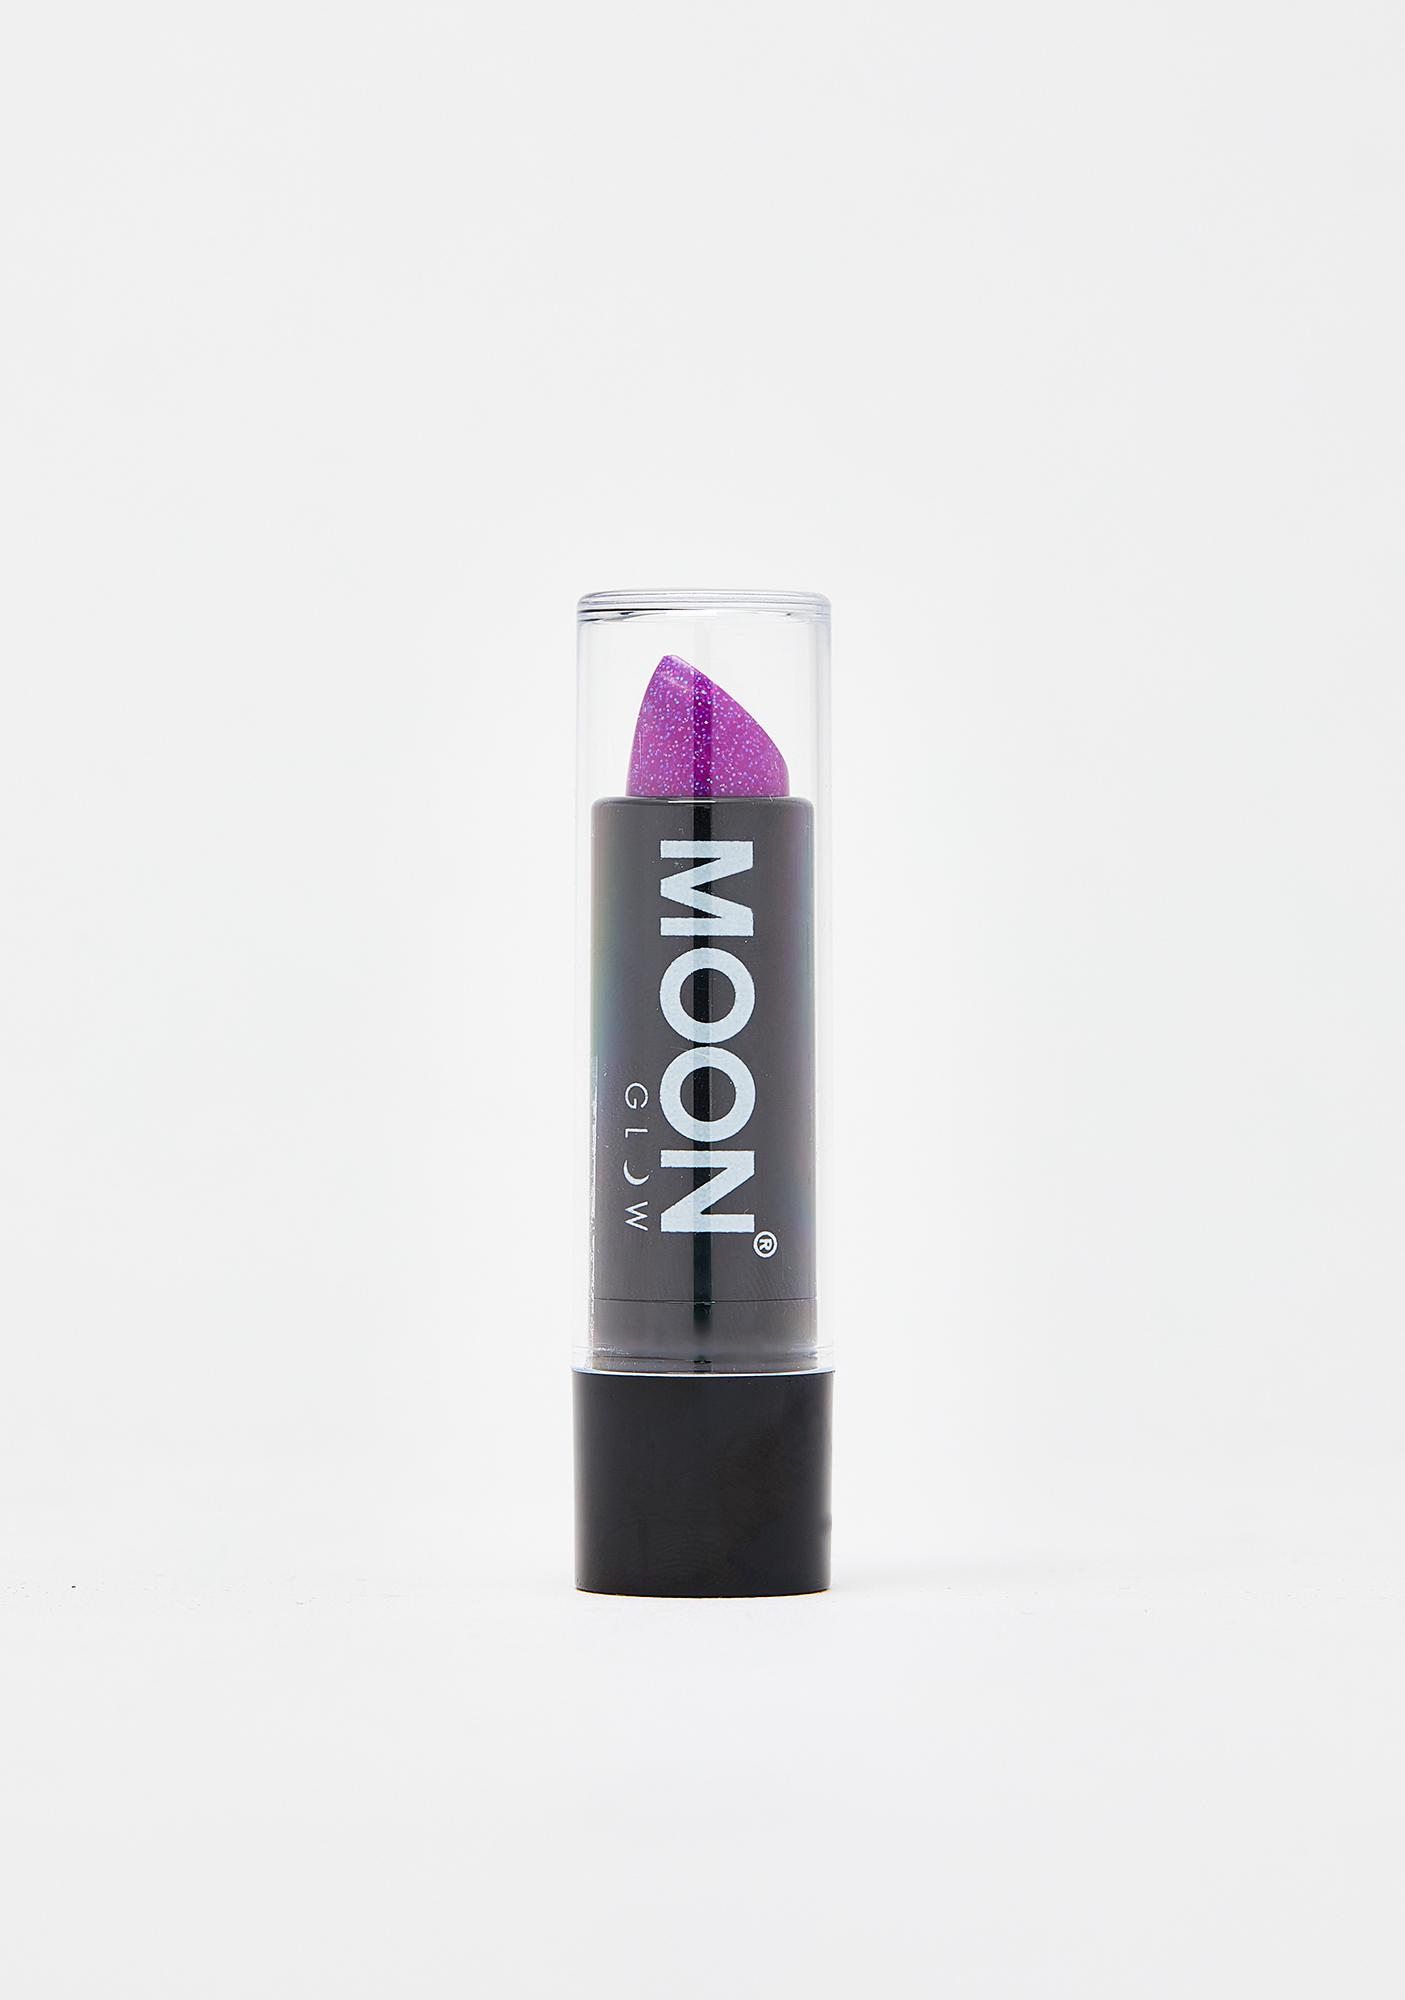 Moon Creations Purple Holographic Glitter Lipstick